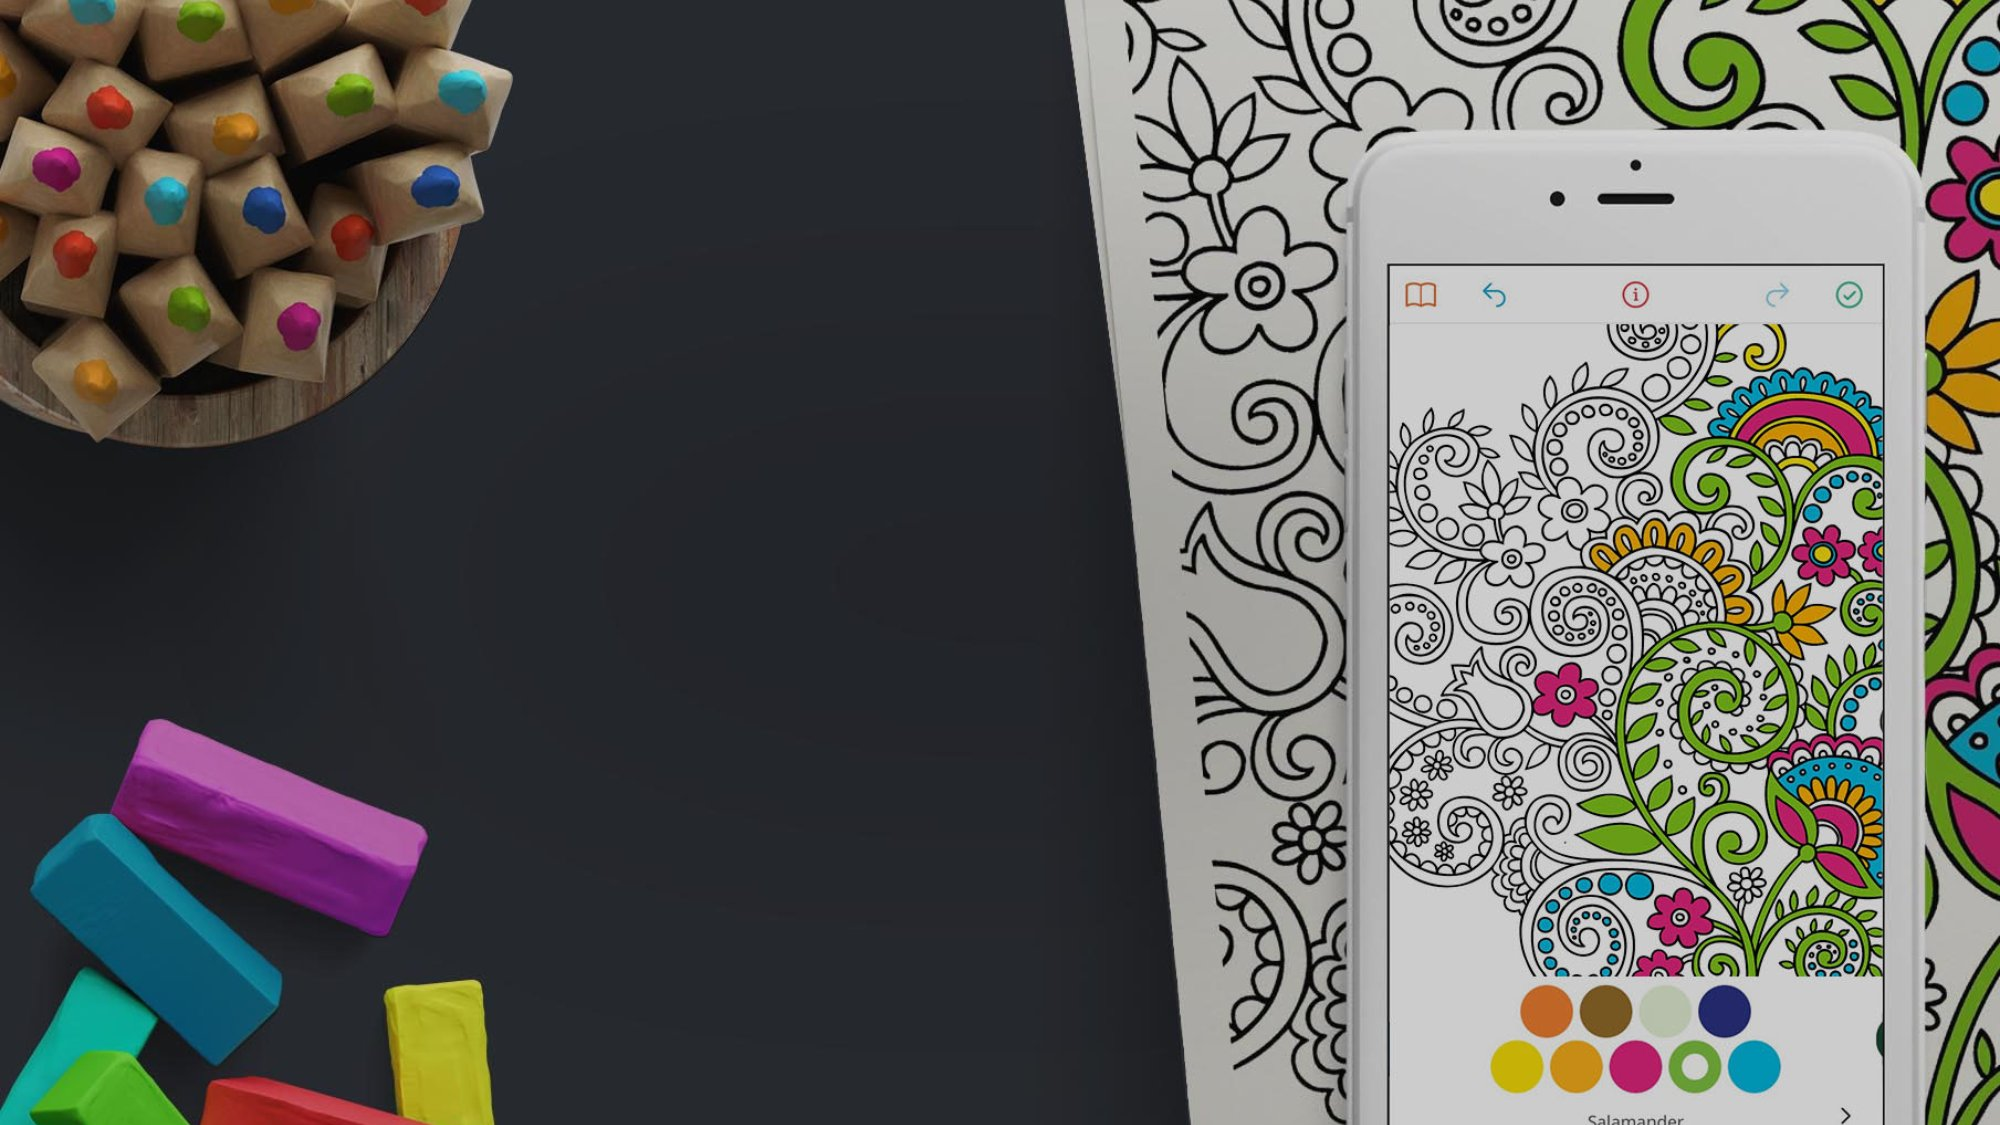 Finnish colouring book app Recolor has gathered over six million downloads. A major boost came in the spring when the app was included in Apple's charitable campaign raising money for WWF.